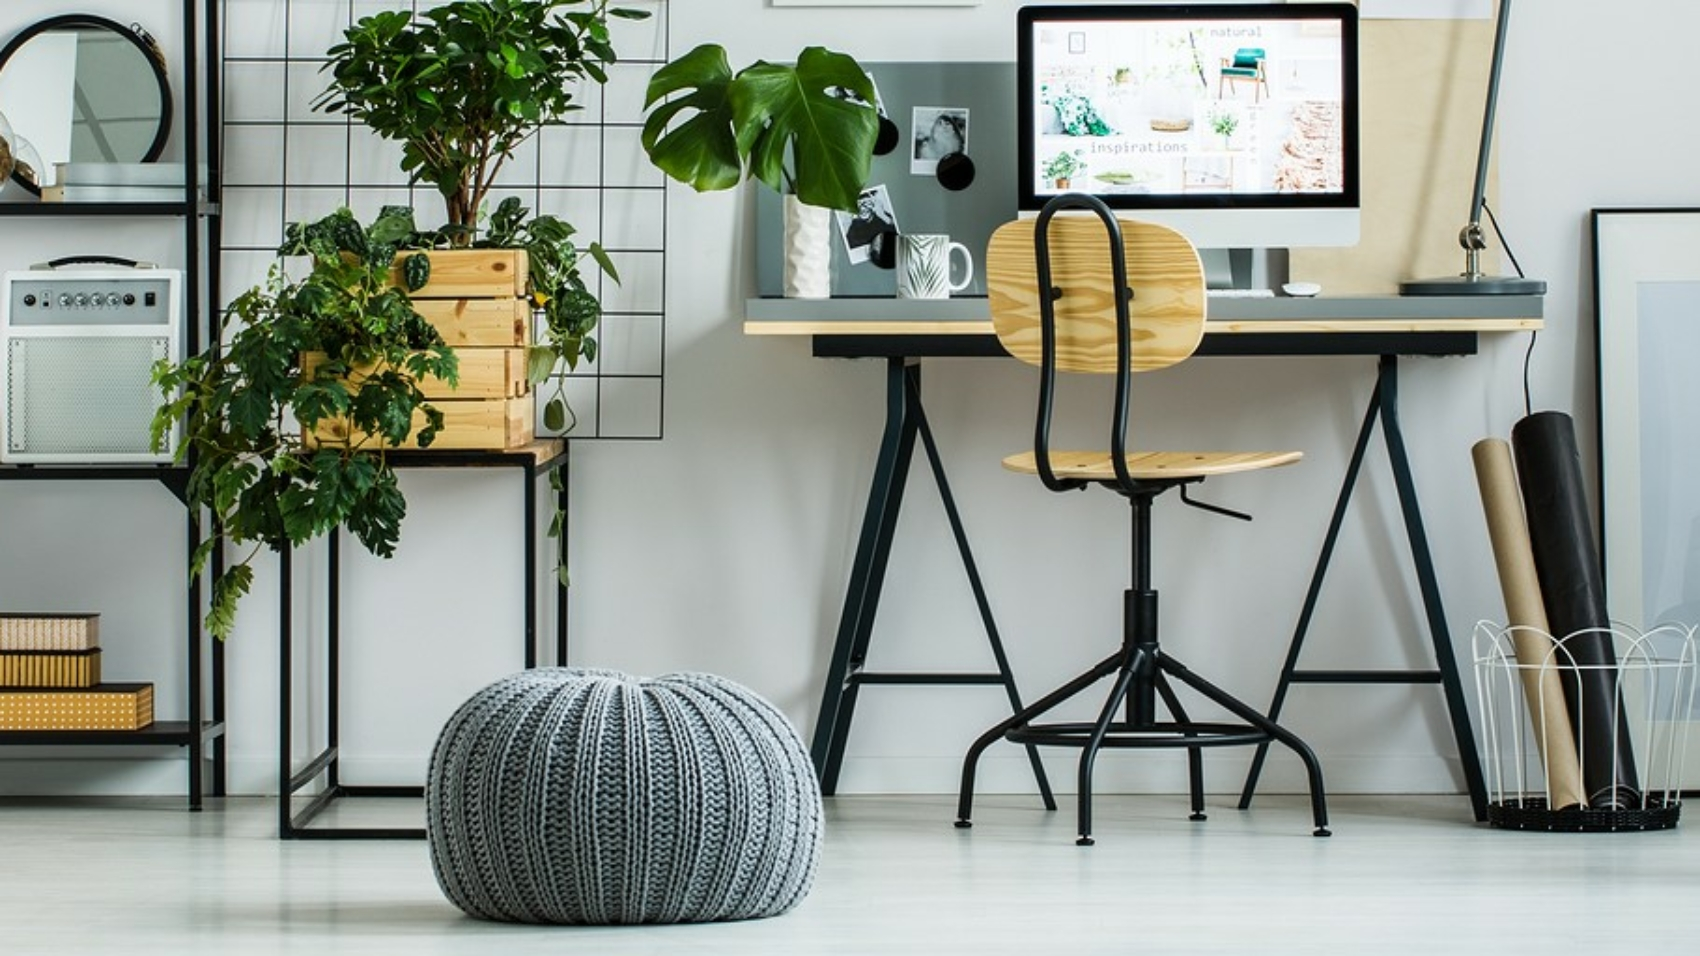 Designed carpet and grey pouf on glossy white floor. Home office design concept